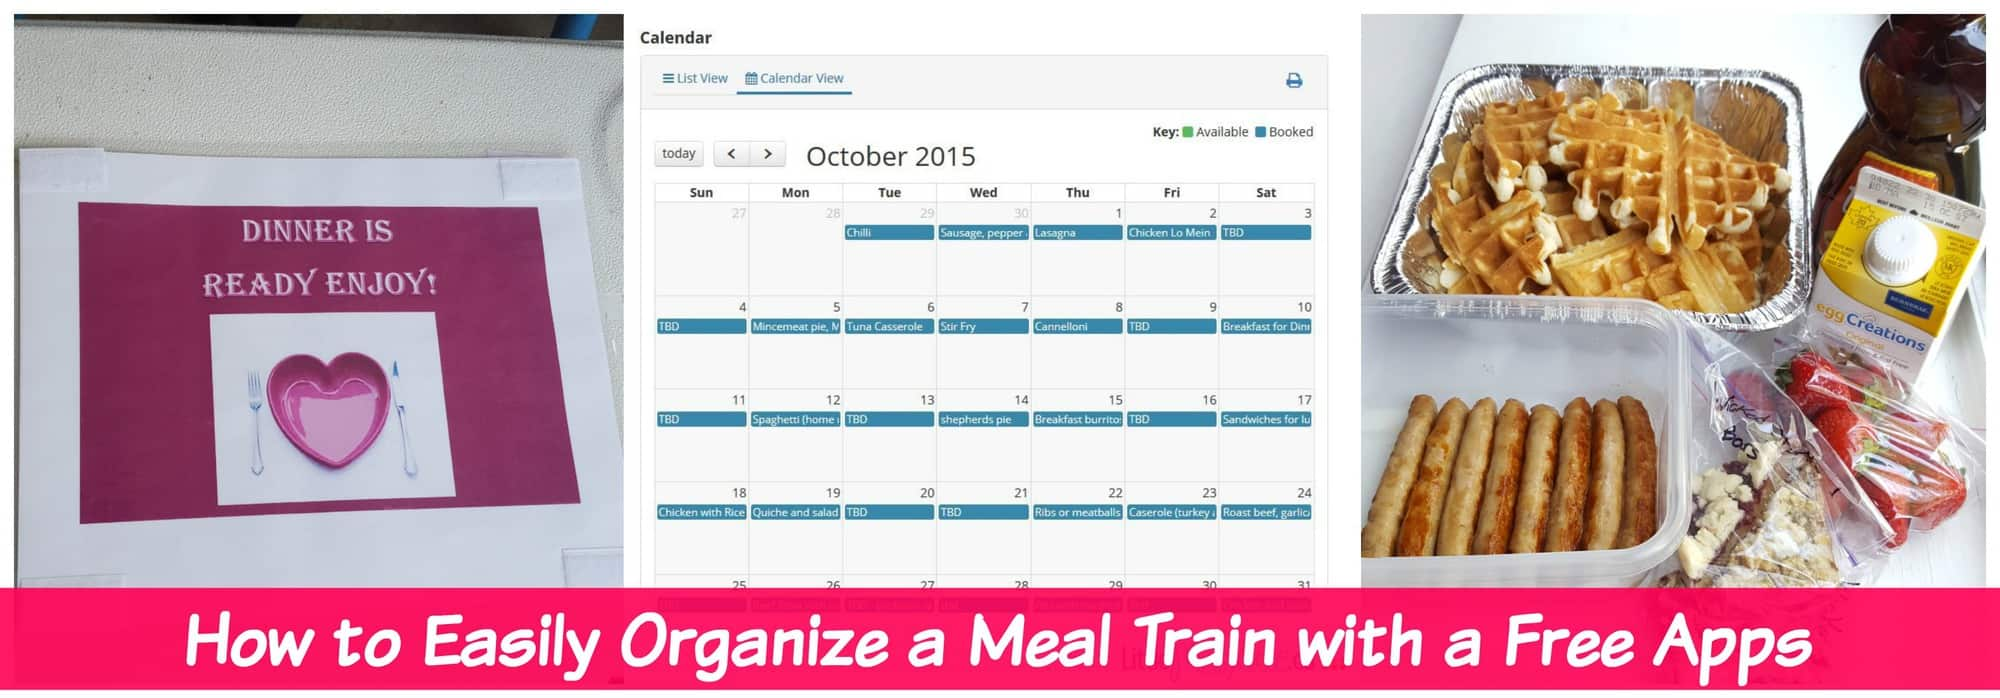 How to Easily Organize a Meal Train with Free Apps